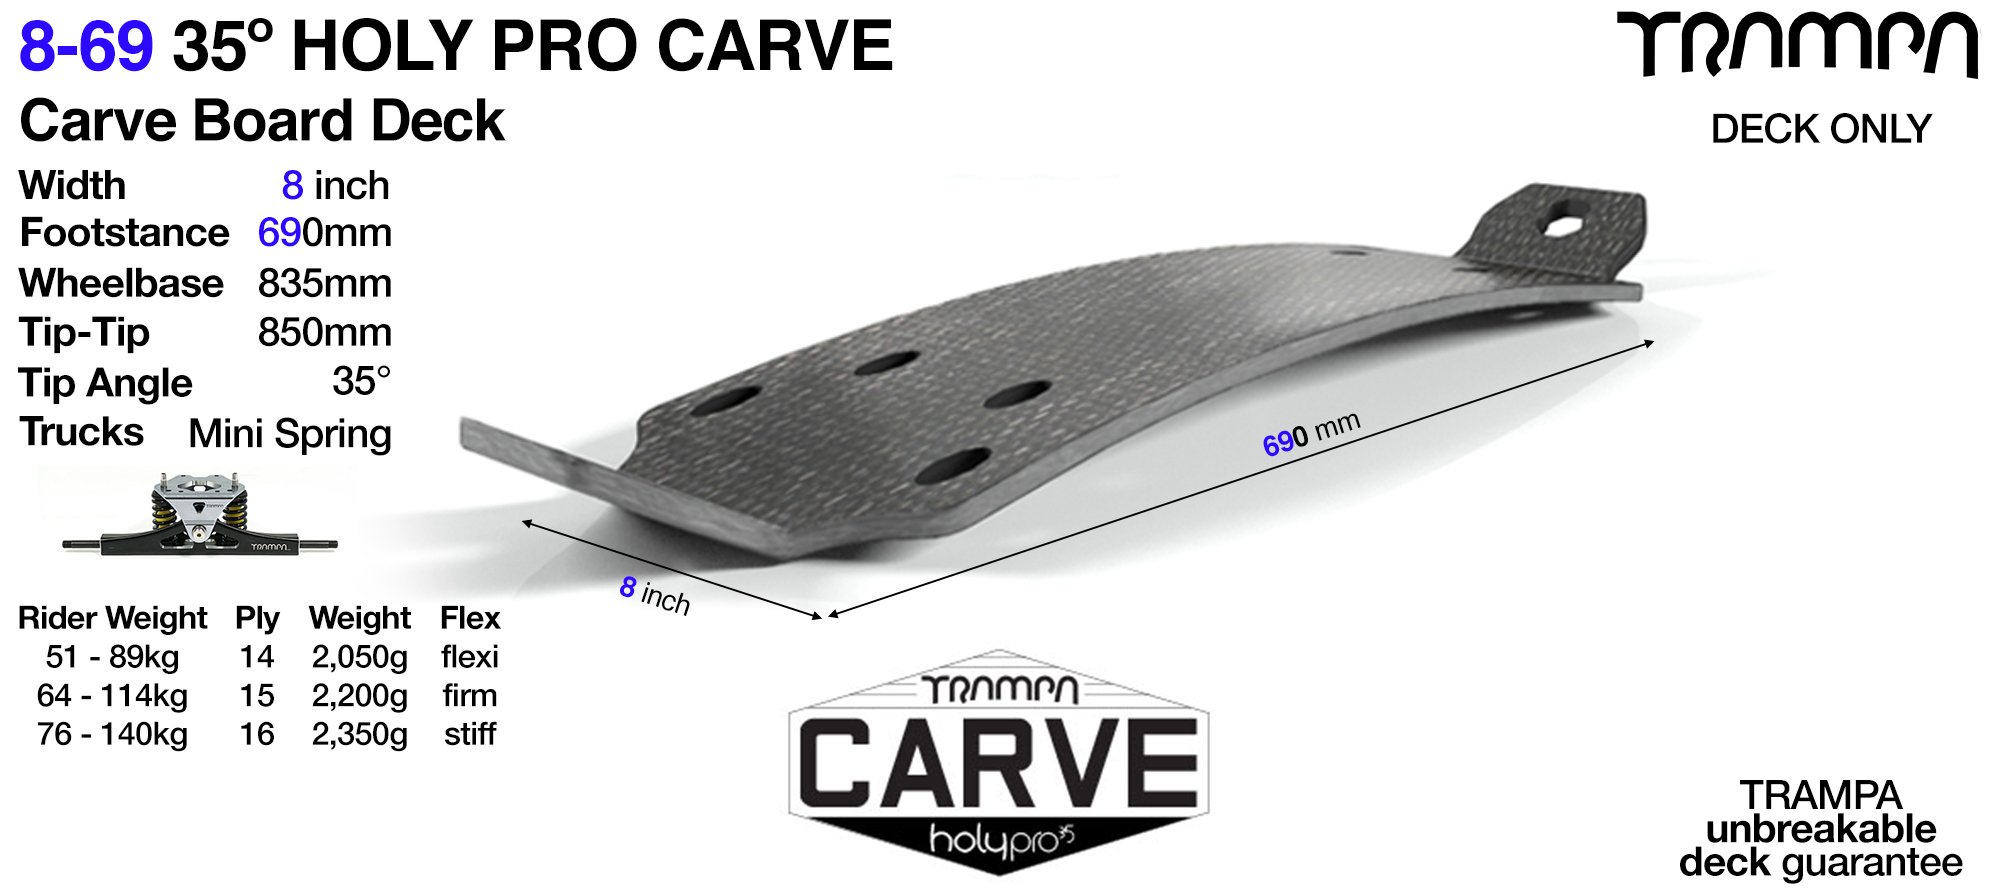 35° Original 9-69 HOLYPRO Carve Deck